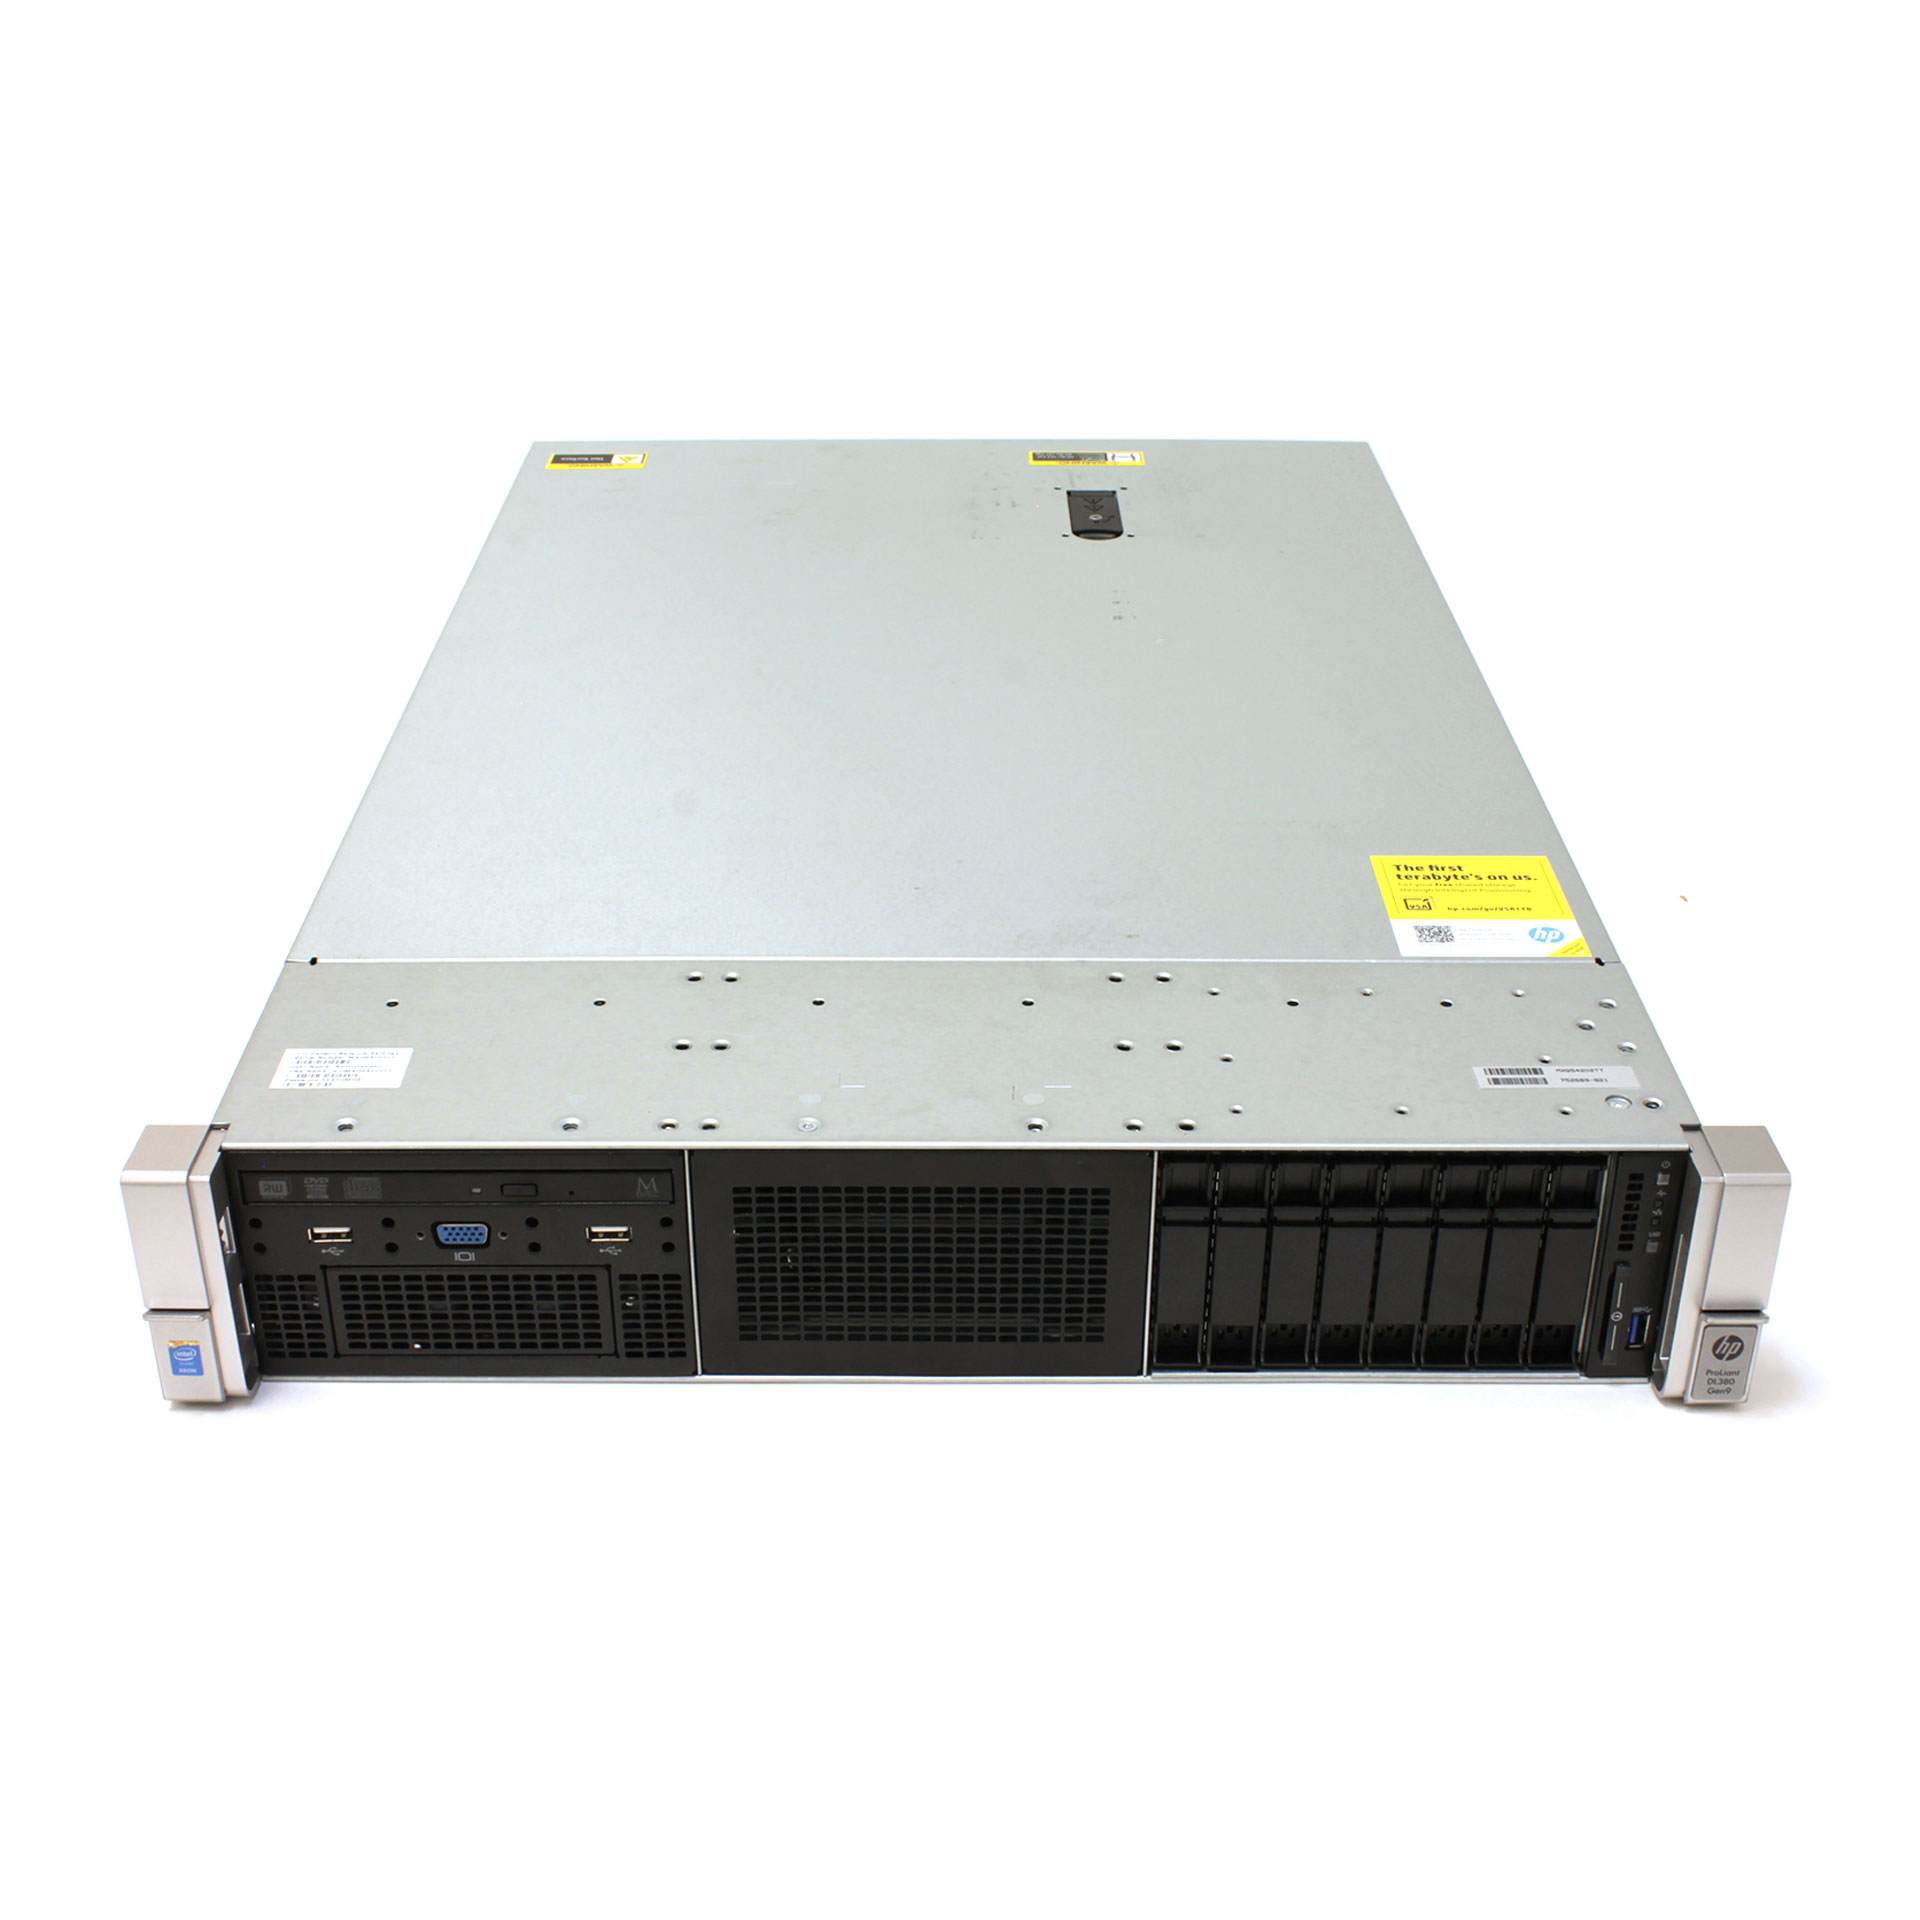 HP ProLiant DL380 Gen9 Server 752689-B21 G9 E5-2650v3 32GB 2U